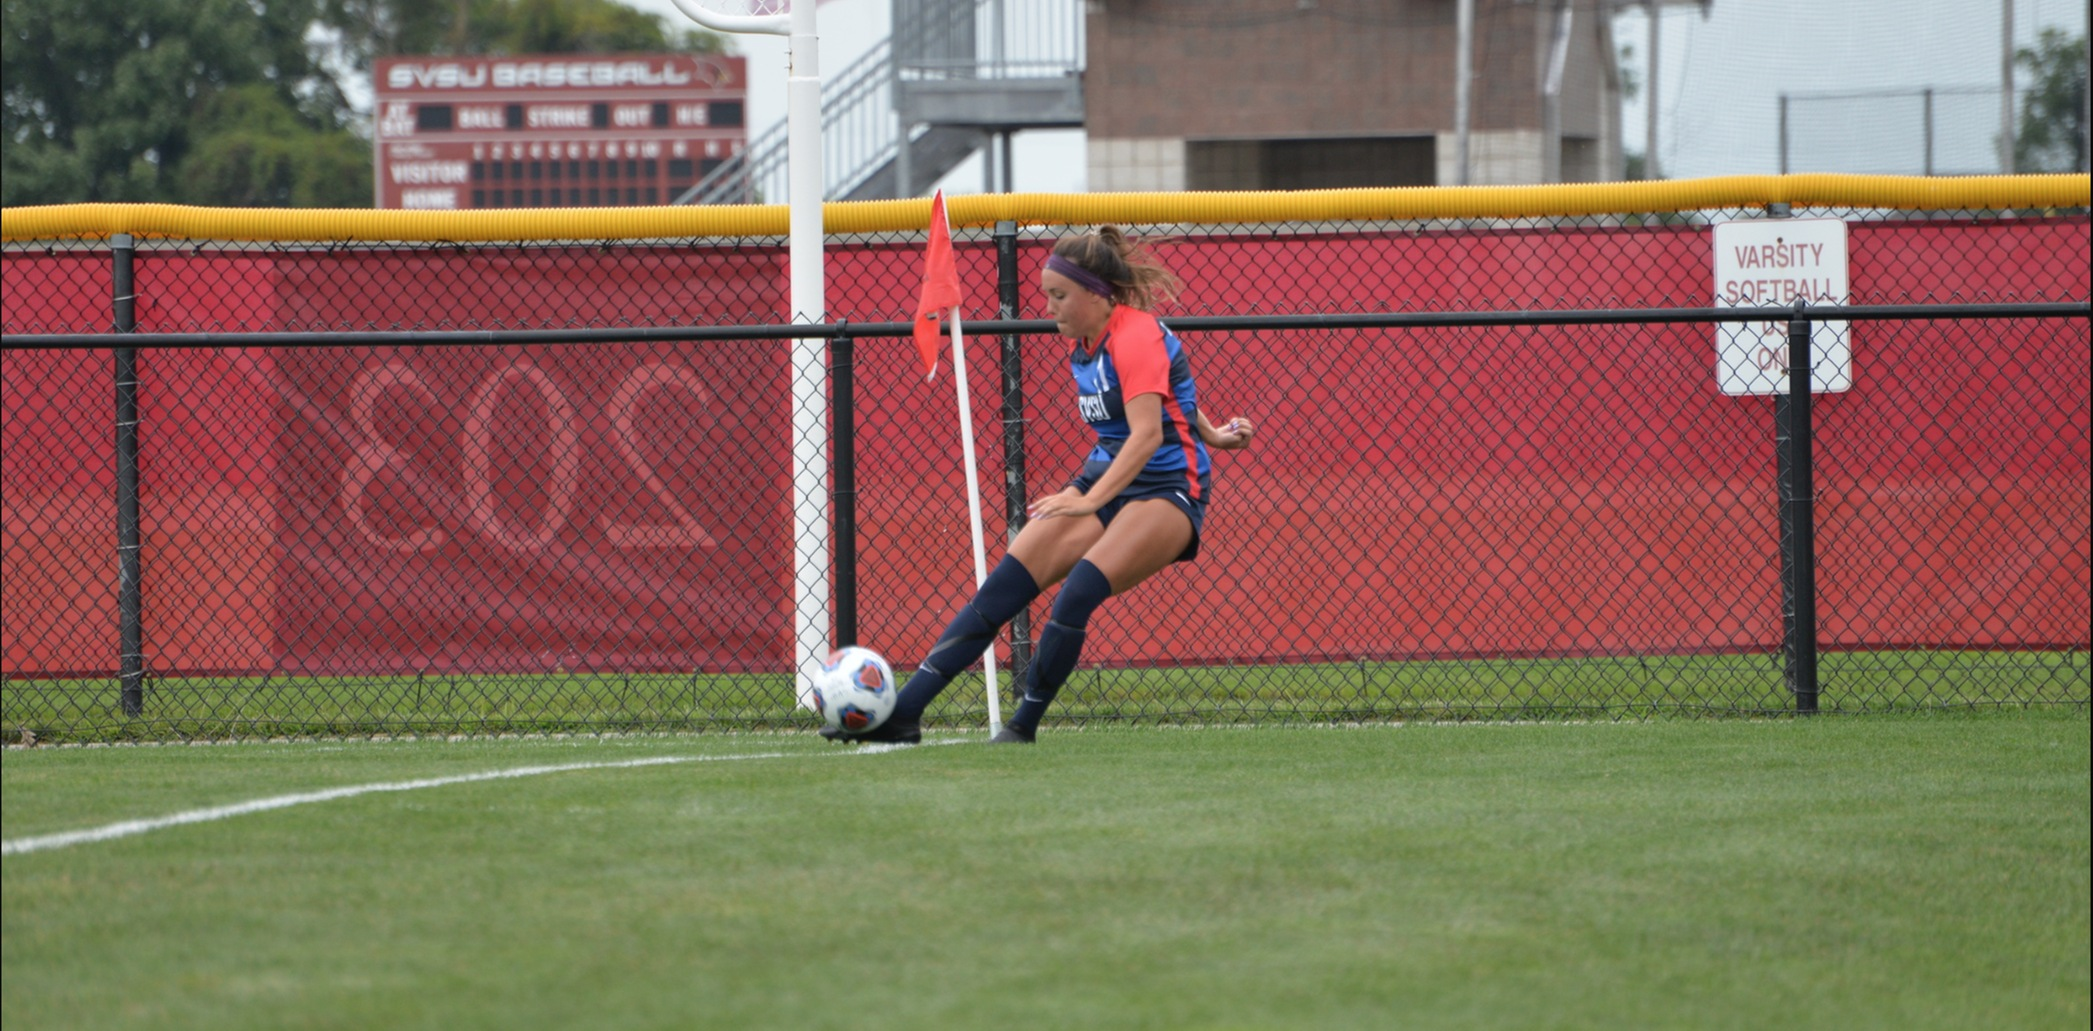 Lady Cardinals Win Big Over Alderson Broaddus, 8-0